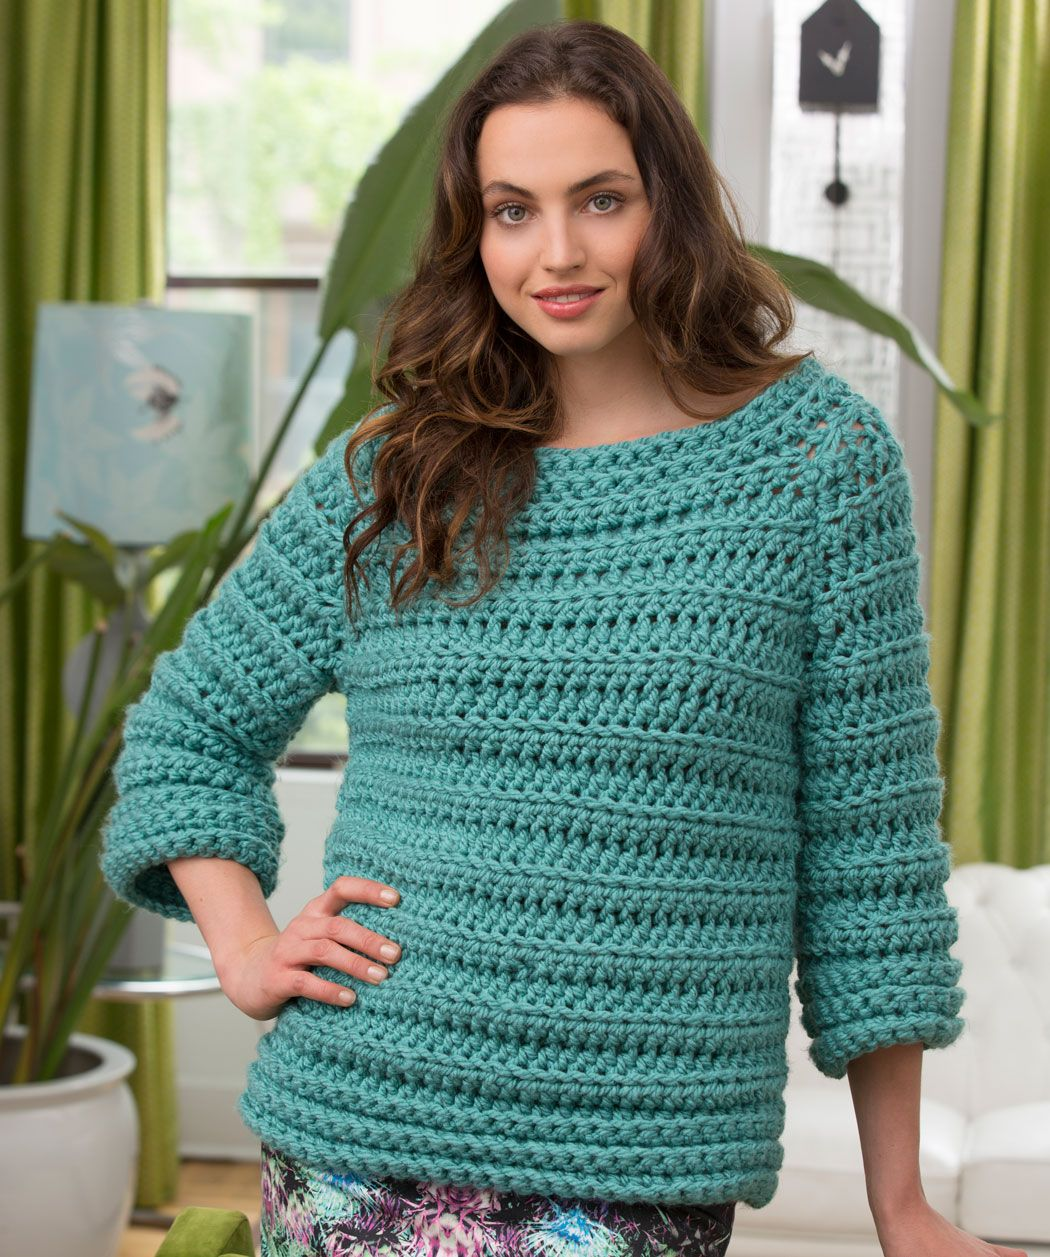 Big on comfort sweater free crochet pattern from red heart yarns big on comfort sweater free crochet pattern from red heart yarns bankloansurffo Images